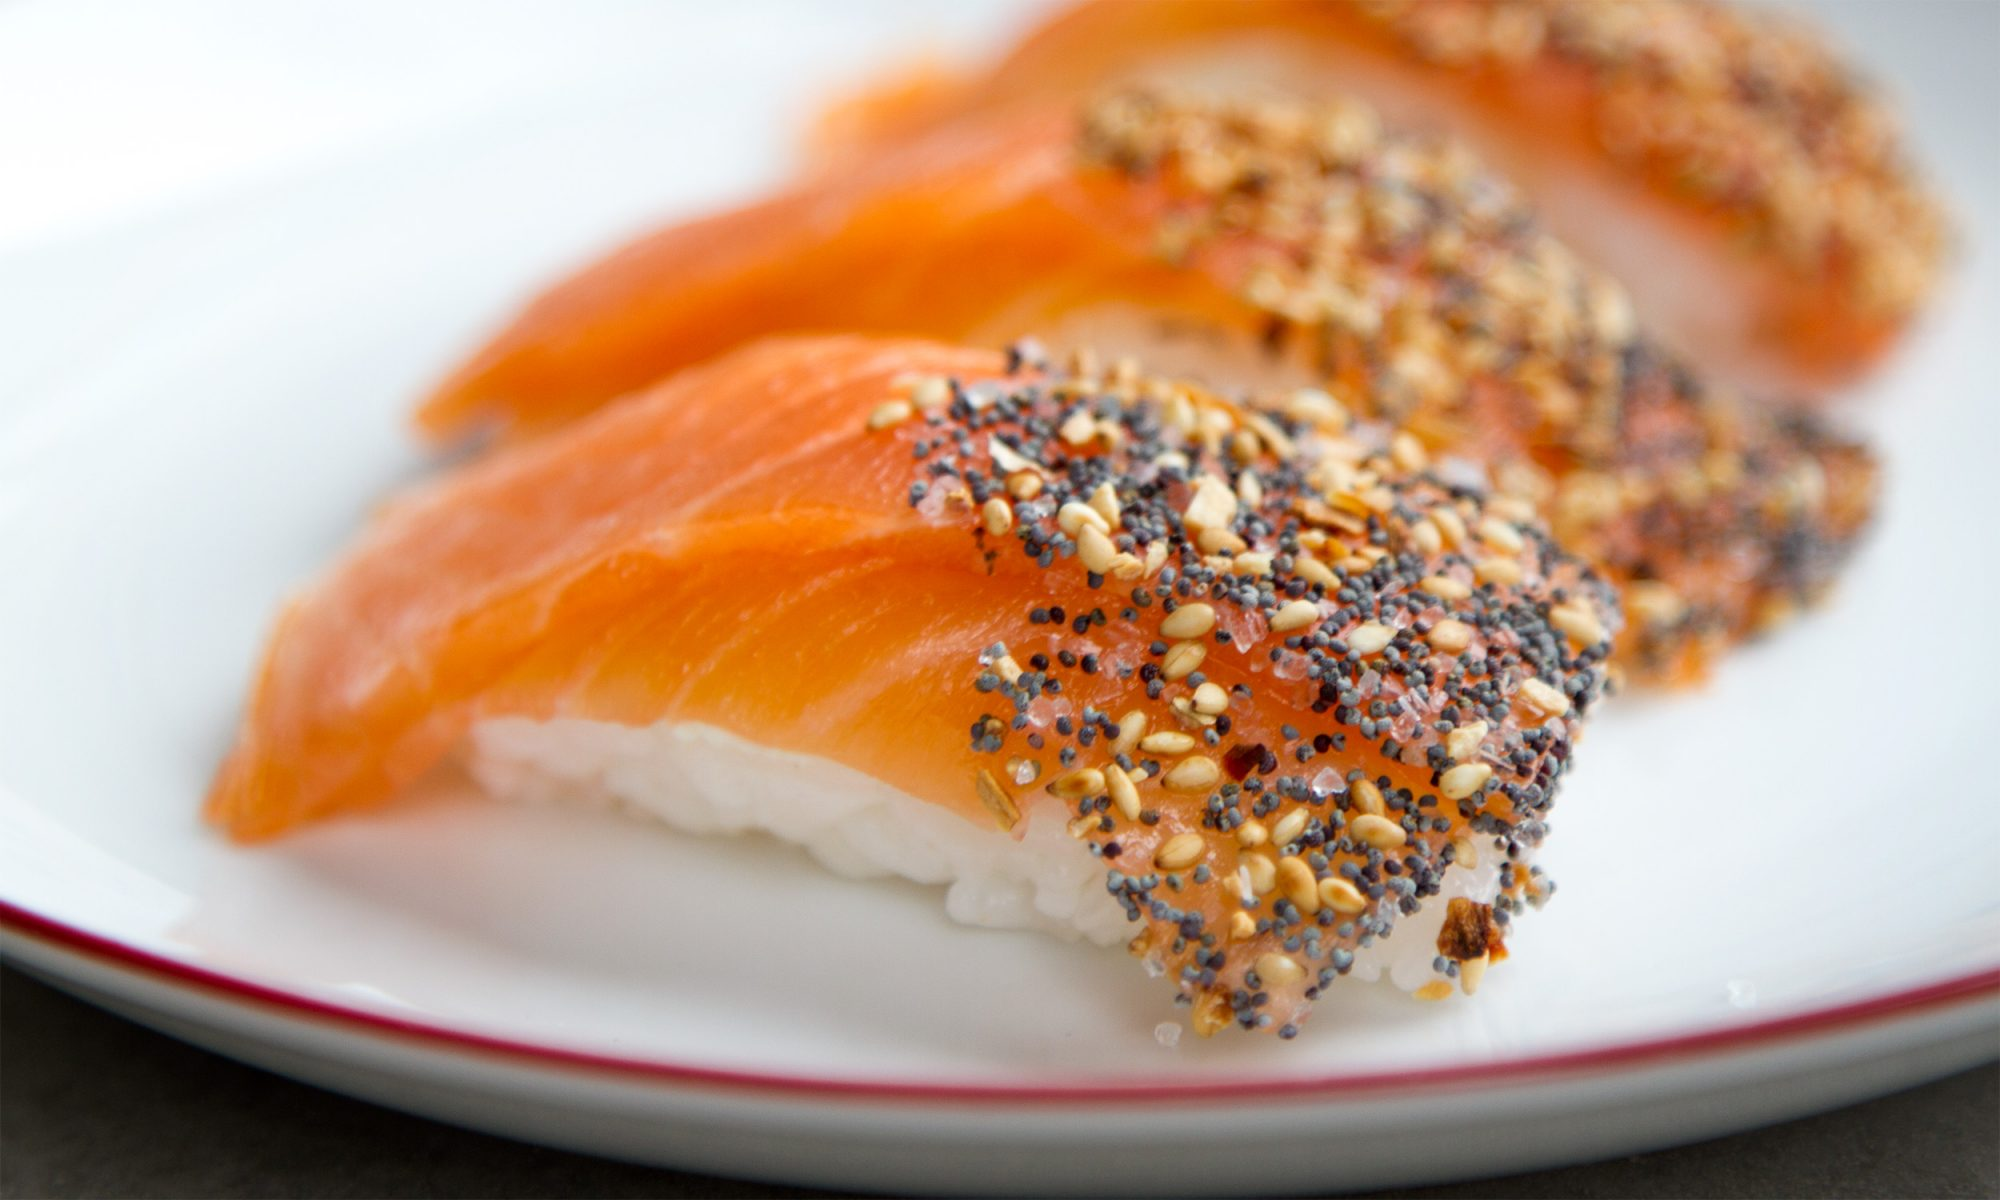 Breakfast Sushi with Everything Bagel Seasoning and Lox